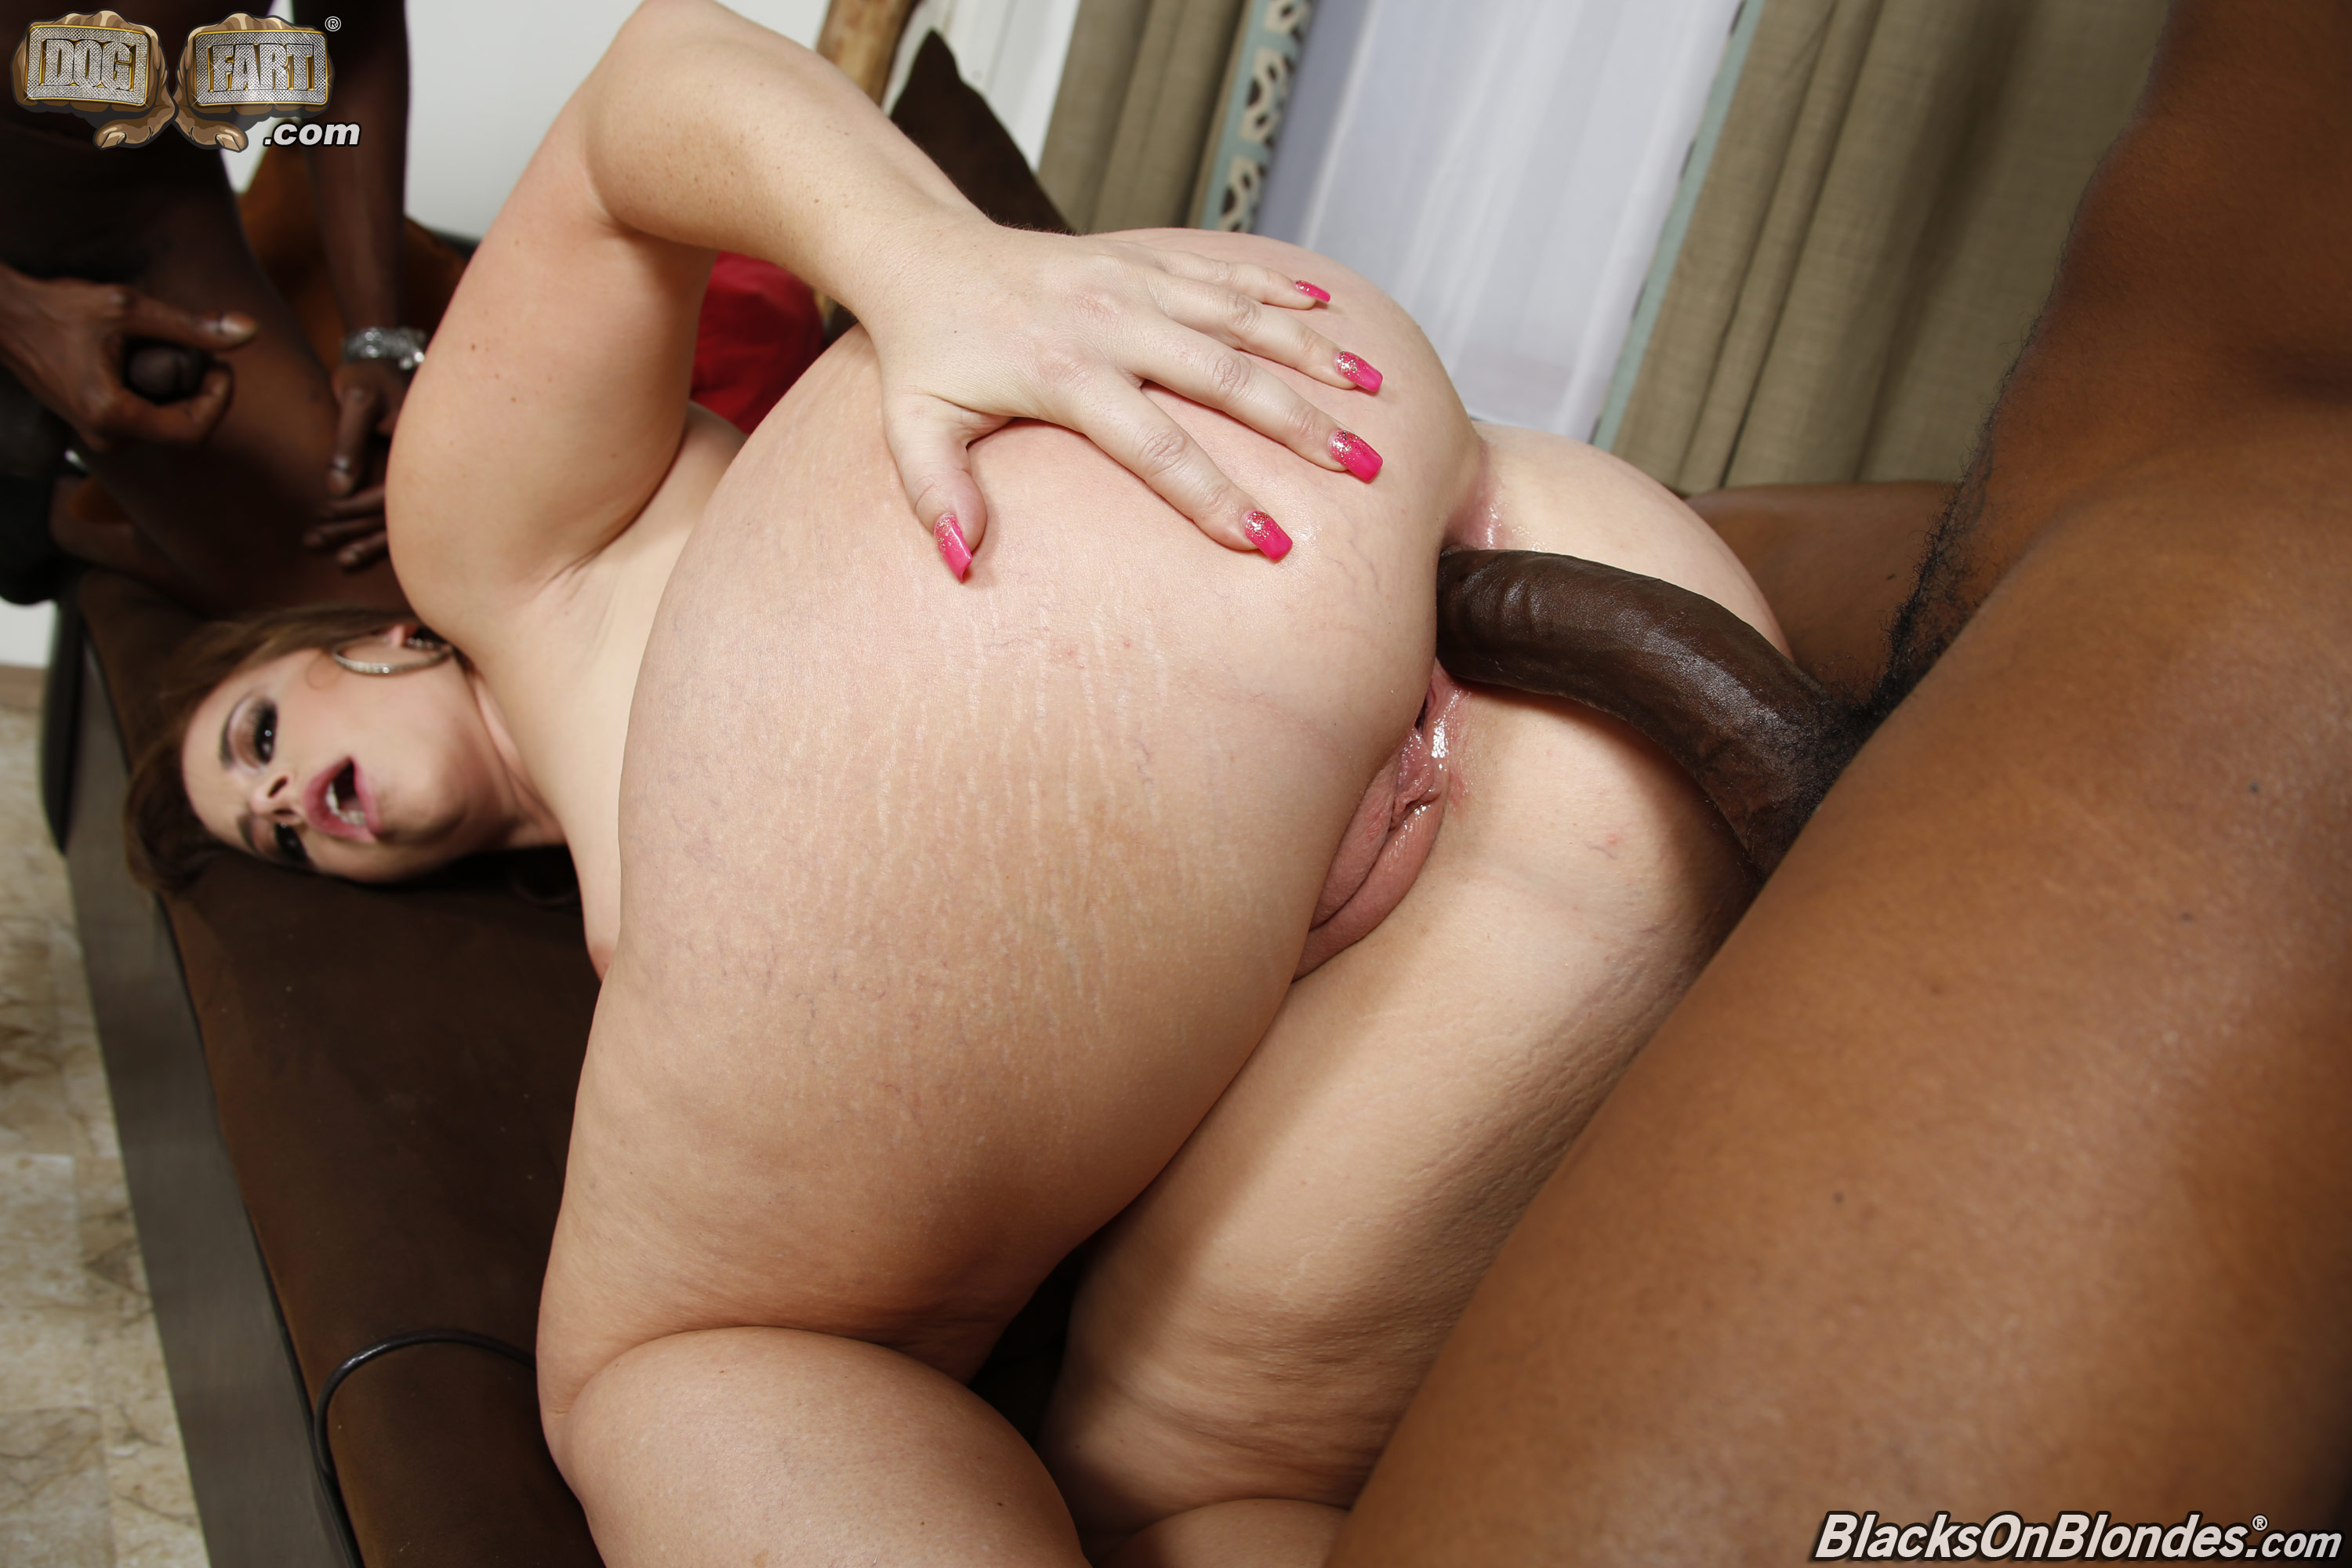 Interracial ass tube